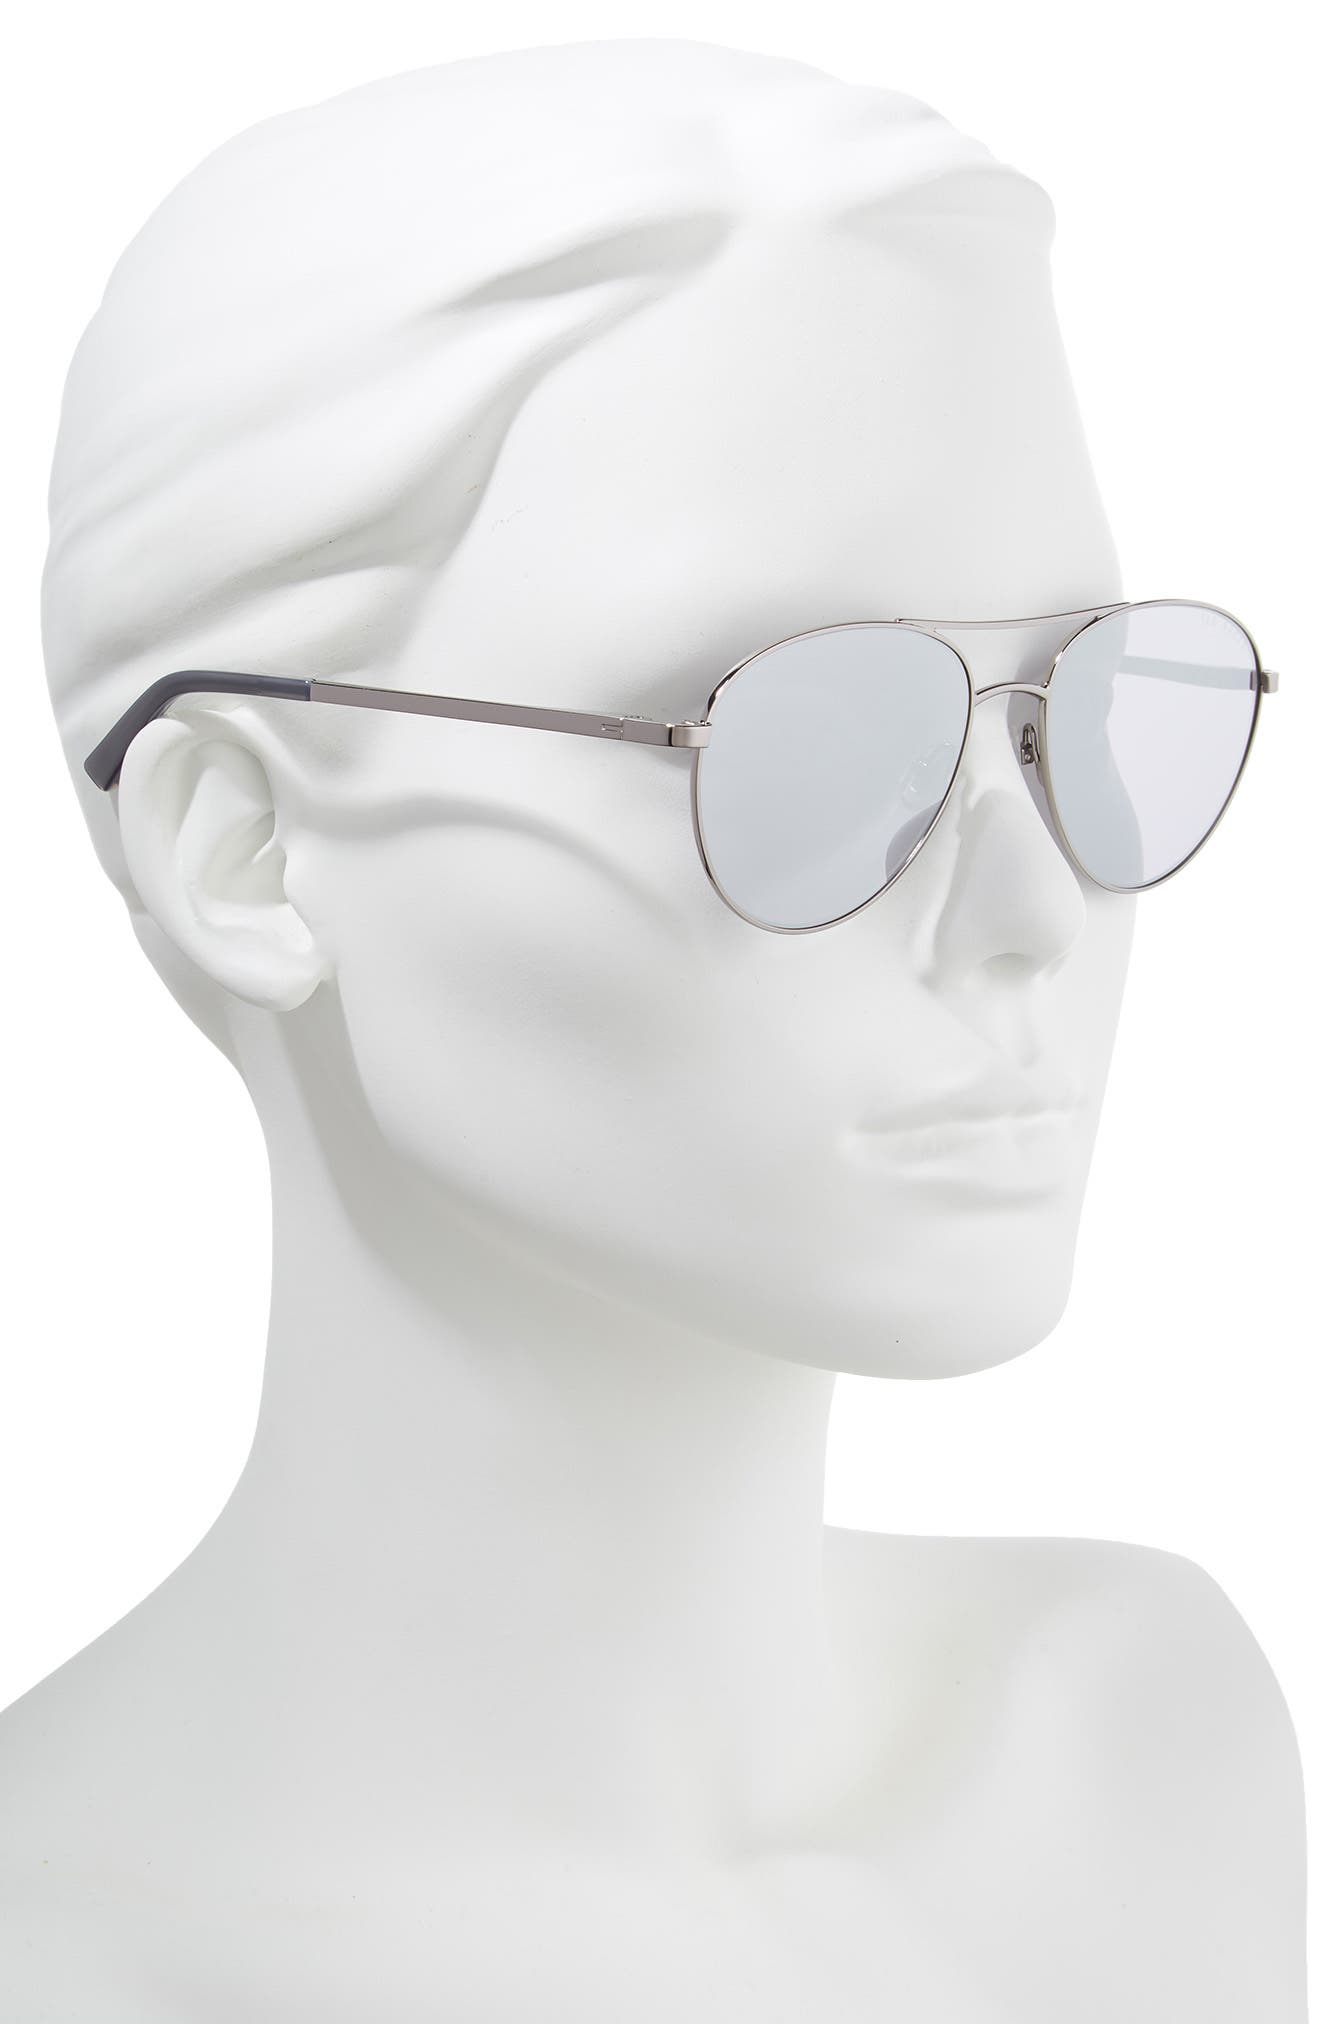 55mm Aviator Sunglasses,                             Alternate thumbnail 2, color,                             SILVER